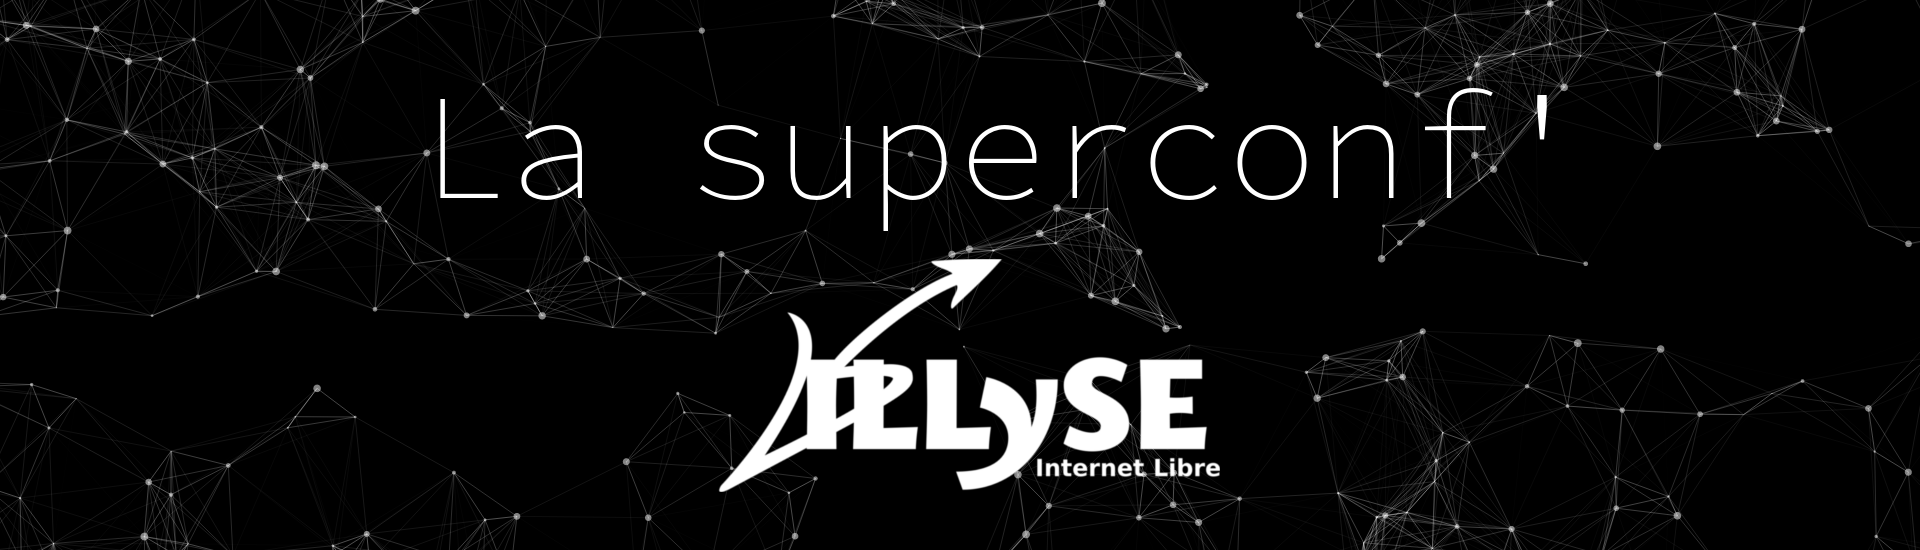 Superconf Illyse Poster